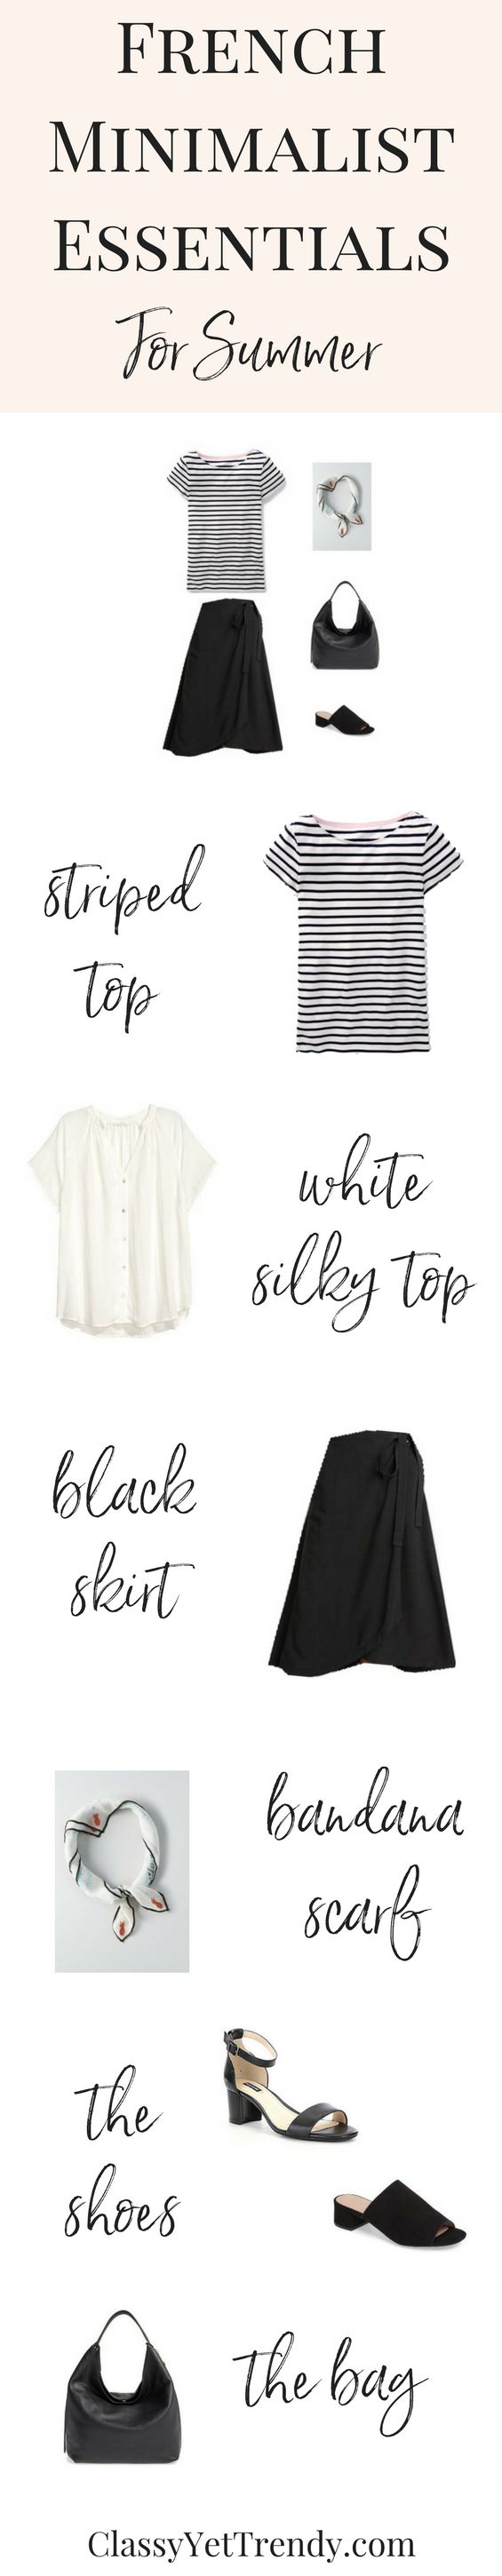 French Minimalist Essentials Clothes For Summer - Mix and match clothes and shoes to create for dozens of outfit ideas that you will love! Featured are a cold shoulder top, striped top, linen shorts, black pencil skirt, chambray skirt, short sleeve cardigan, ankle pants, skinny jeans, white tee.